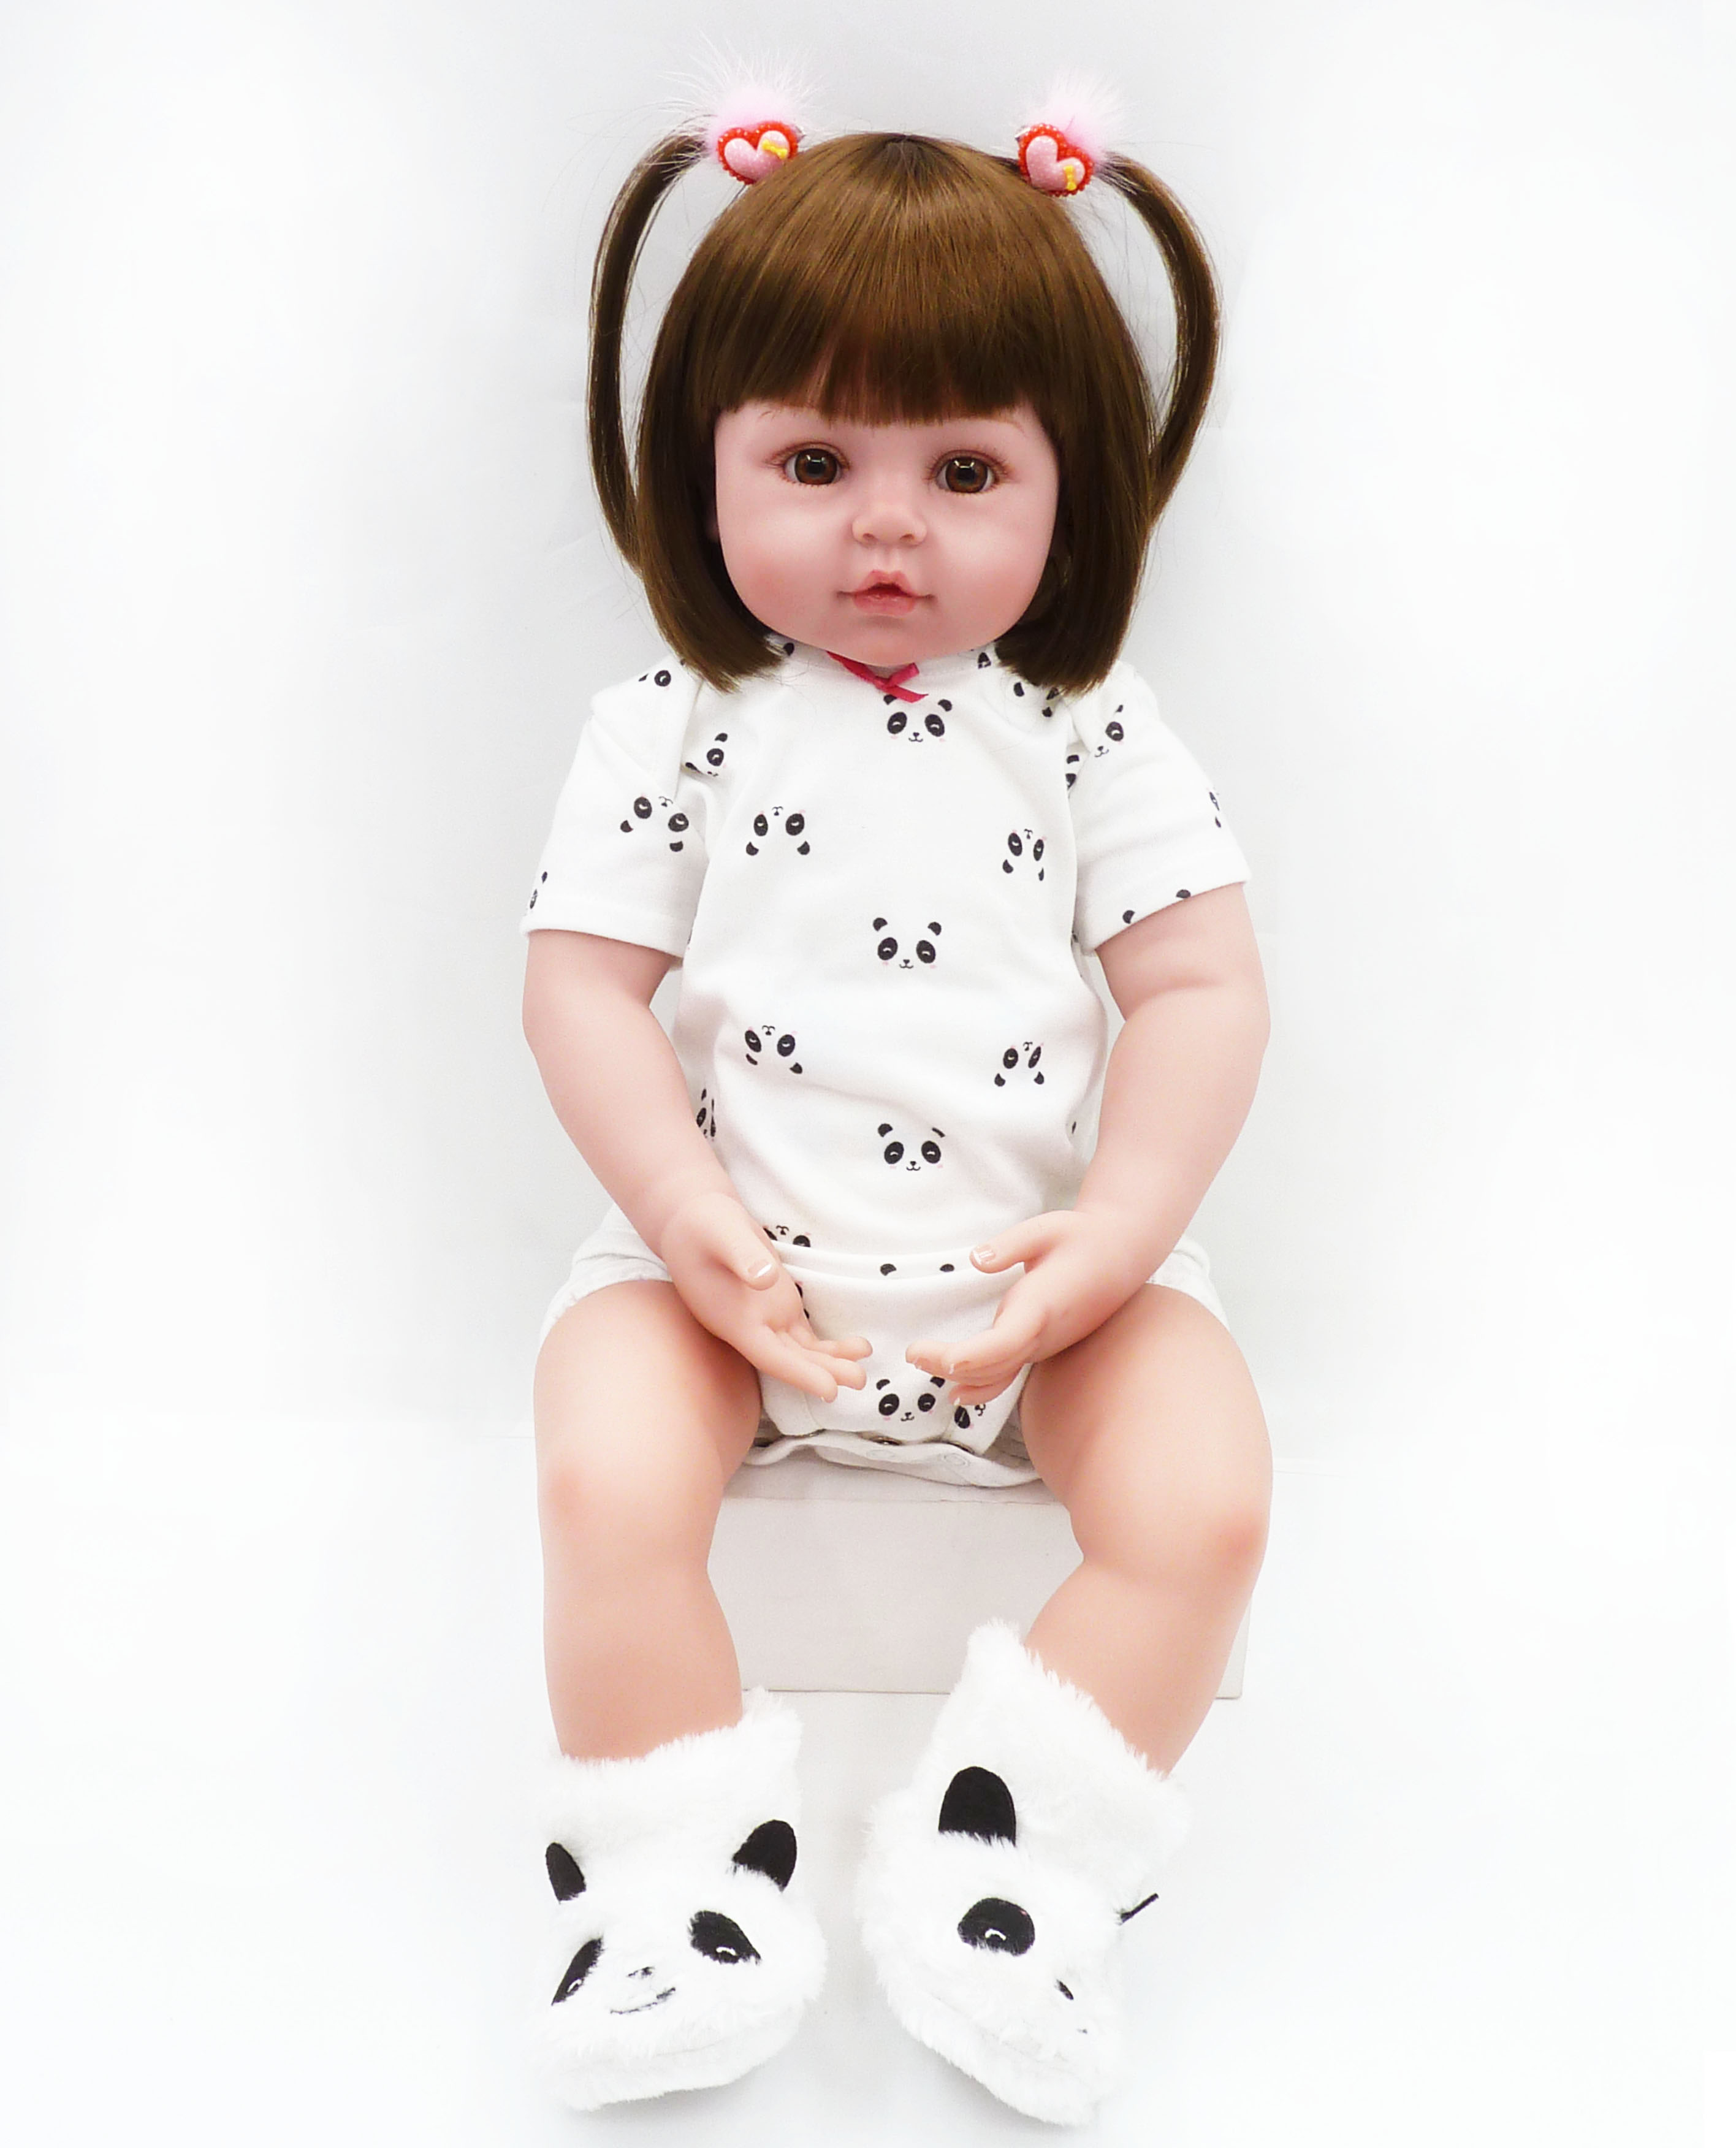 61cm 24inch Soft Cotton Body Silicone Doll Reborn Lifelike Baby Girl Doll Reborn Baby Real Doll Kids Birthday Christmas Gifts silicone reborn baby doll toys for girl lifelike boy baby reborn dolls birthday christmas gifts kids child toy